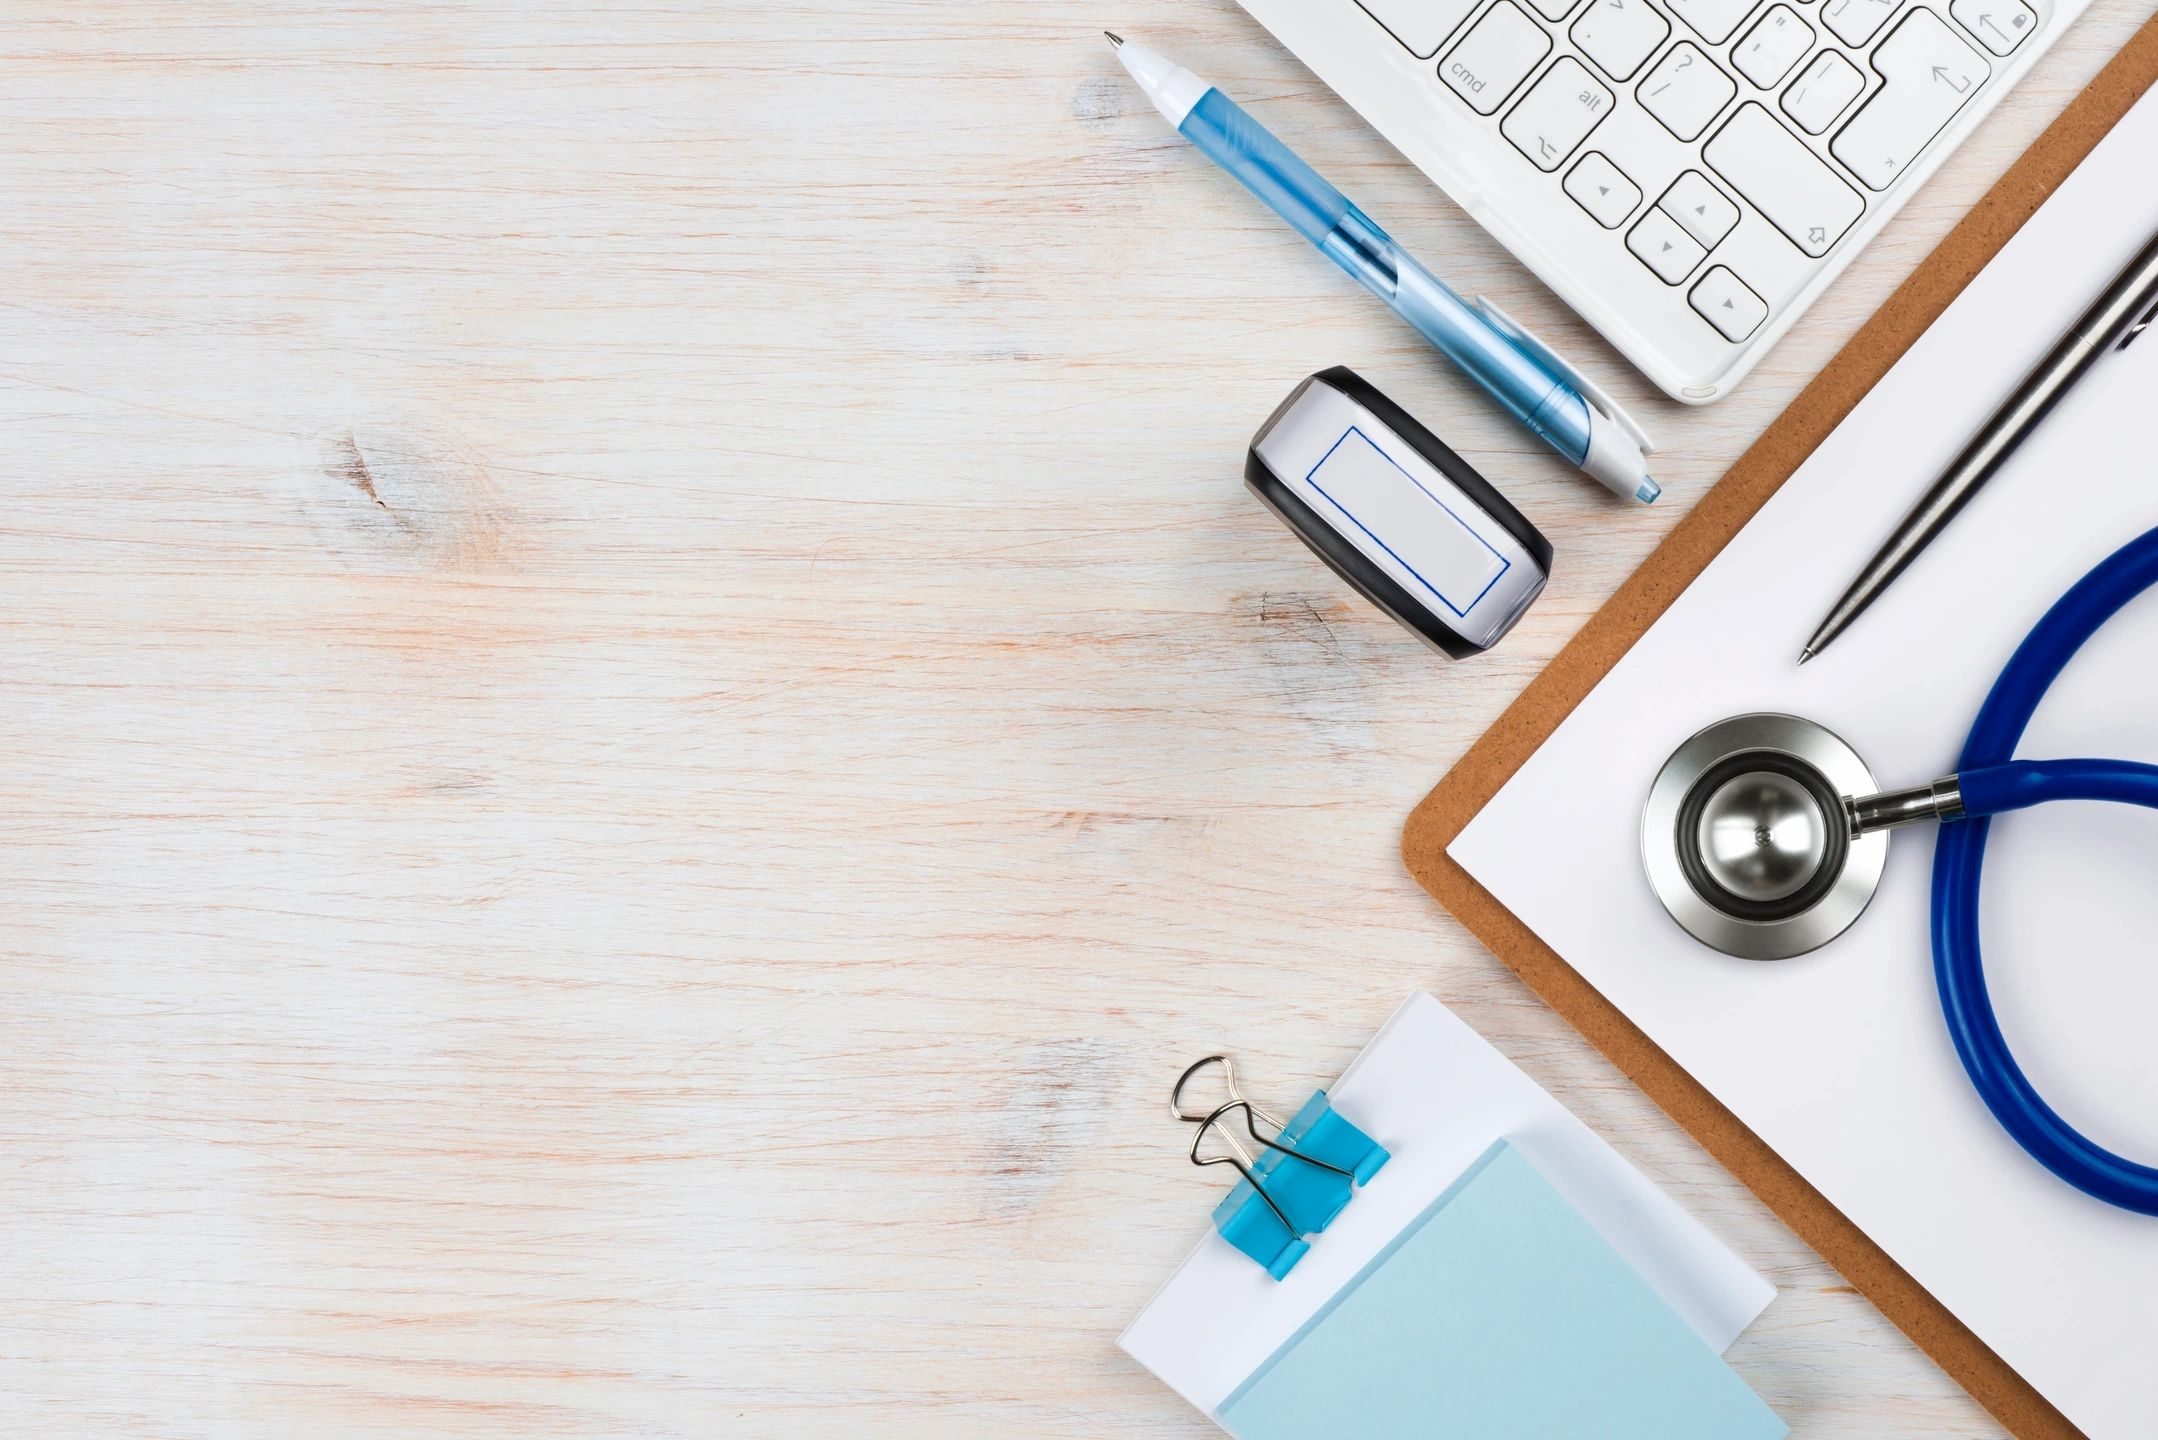 Keyboard, mouse, clipboard and stethoscope on a desk